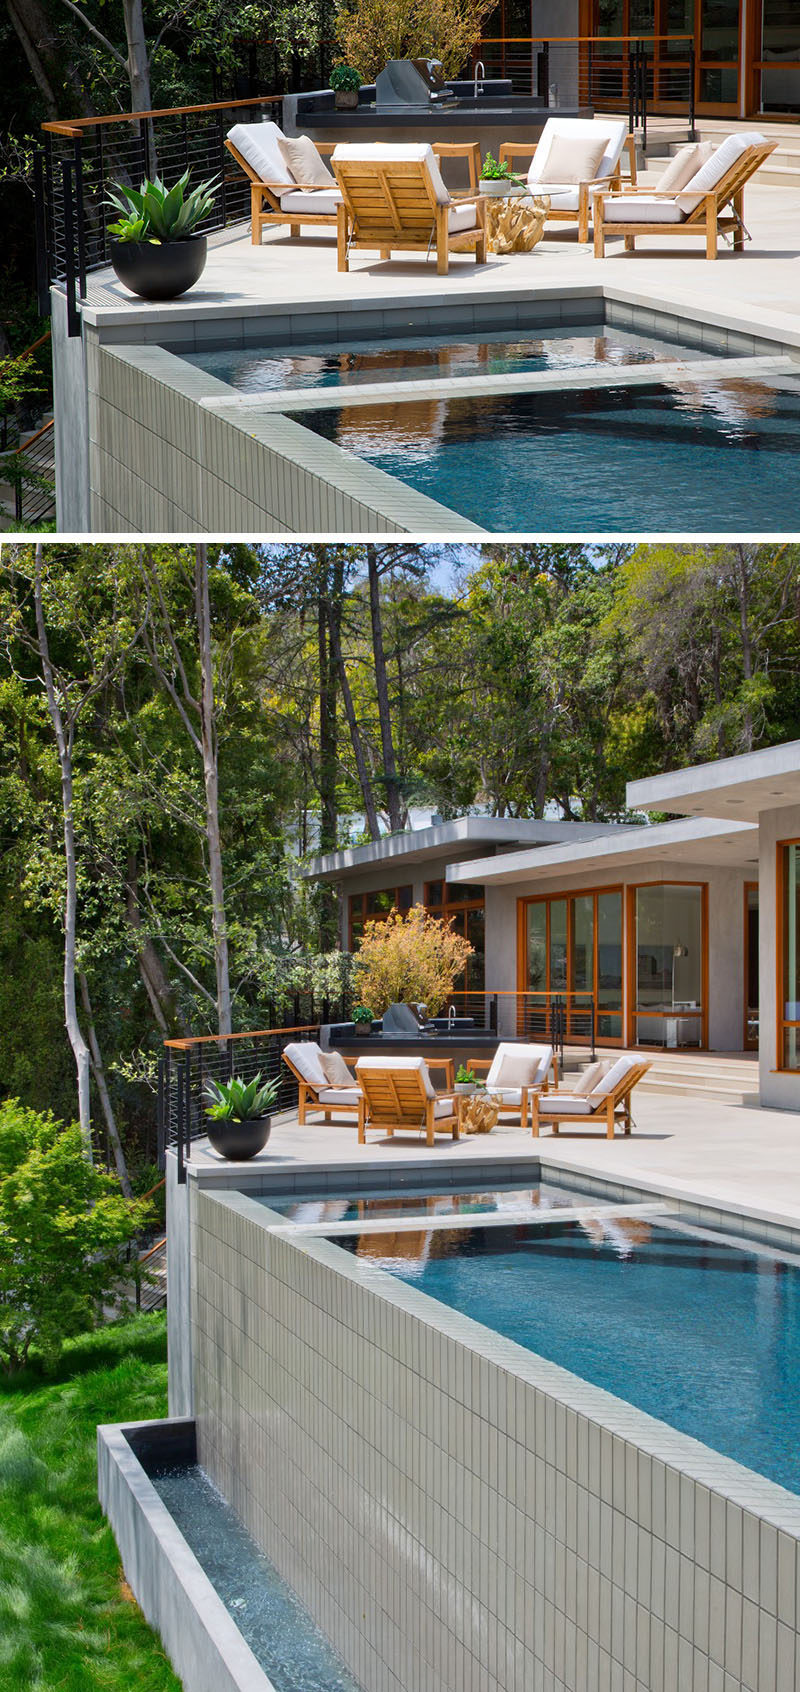 This home has an infinity edge swimming pool and a great space for lounging in the sun.